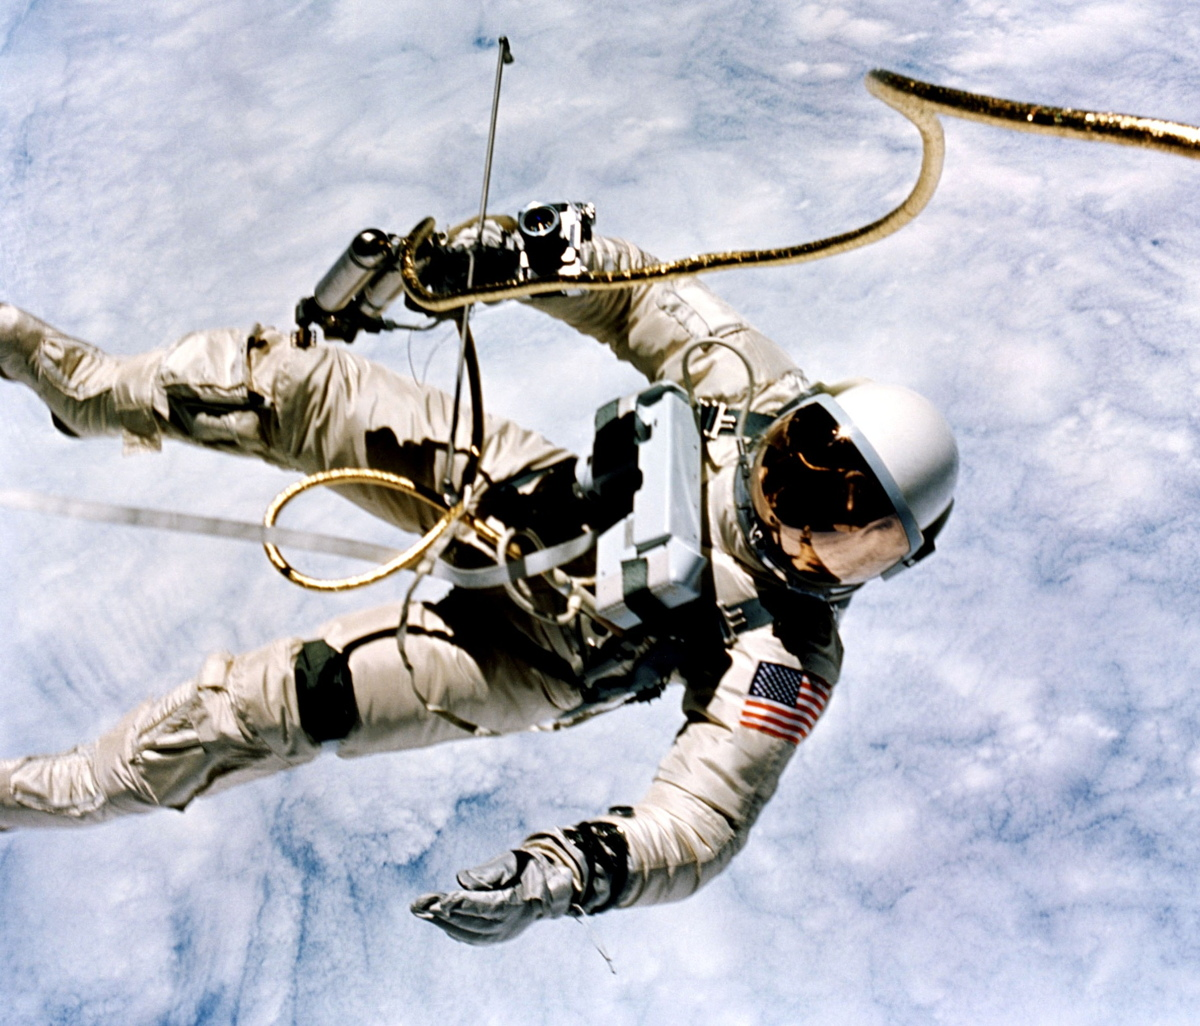 Ed White Spacewalks with Clouds in Background